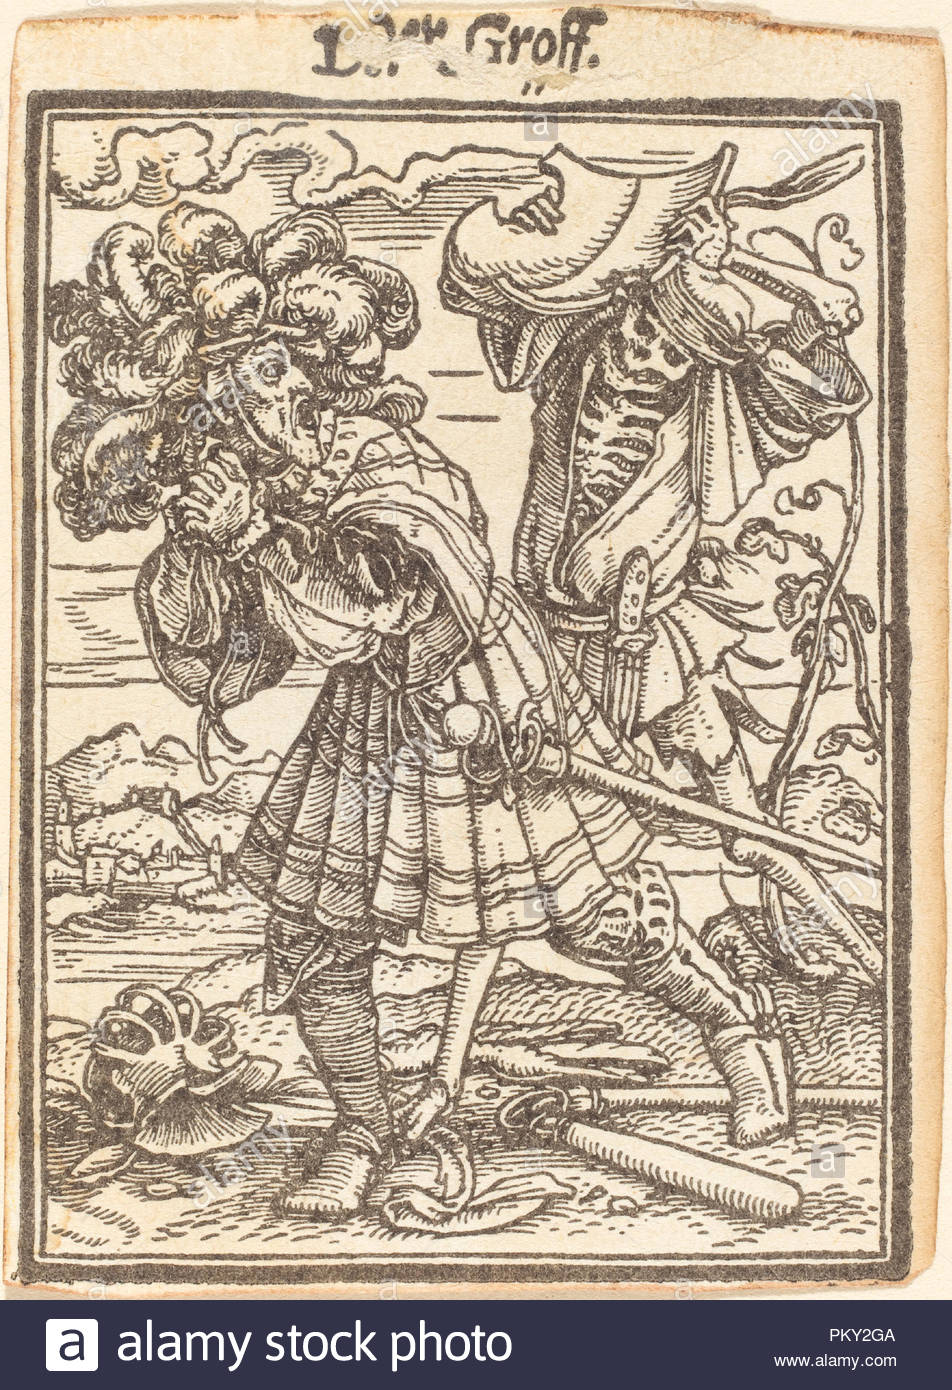 Count. Medium: woodcut. Museum: National Gallery of Art, Washington DC. Author: Hans Holbein the Younger. - Stock Image